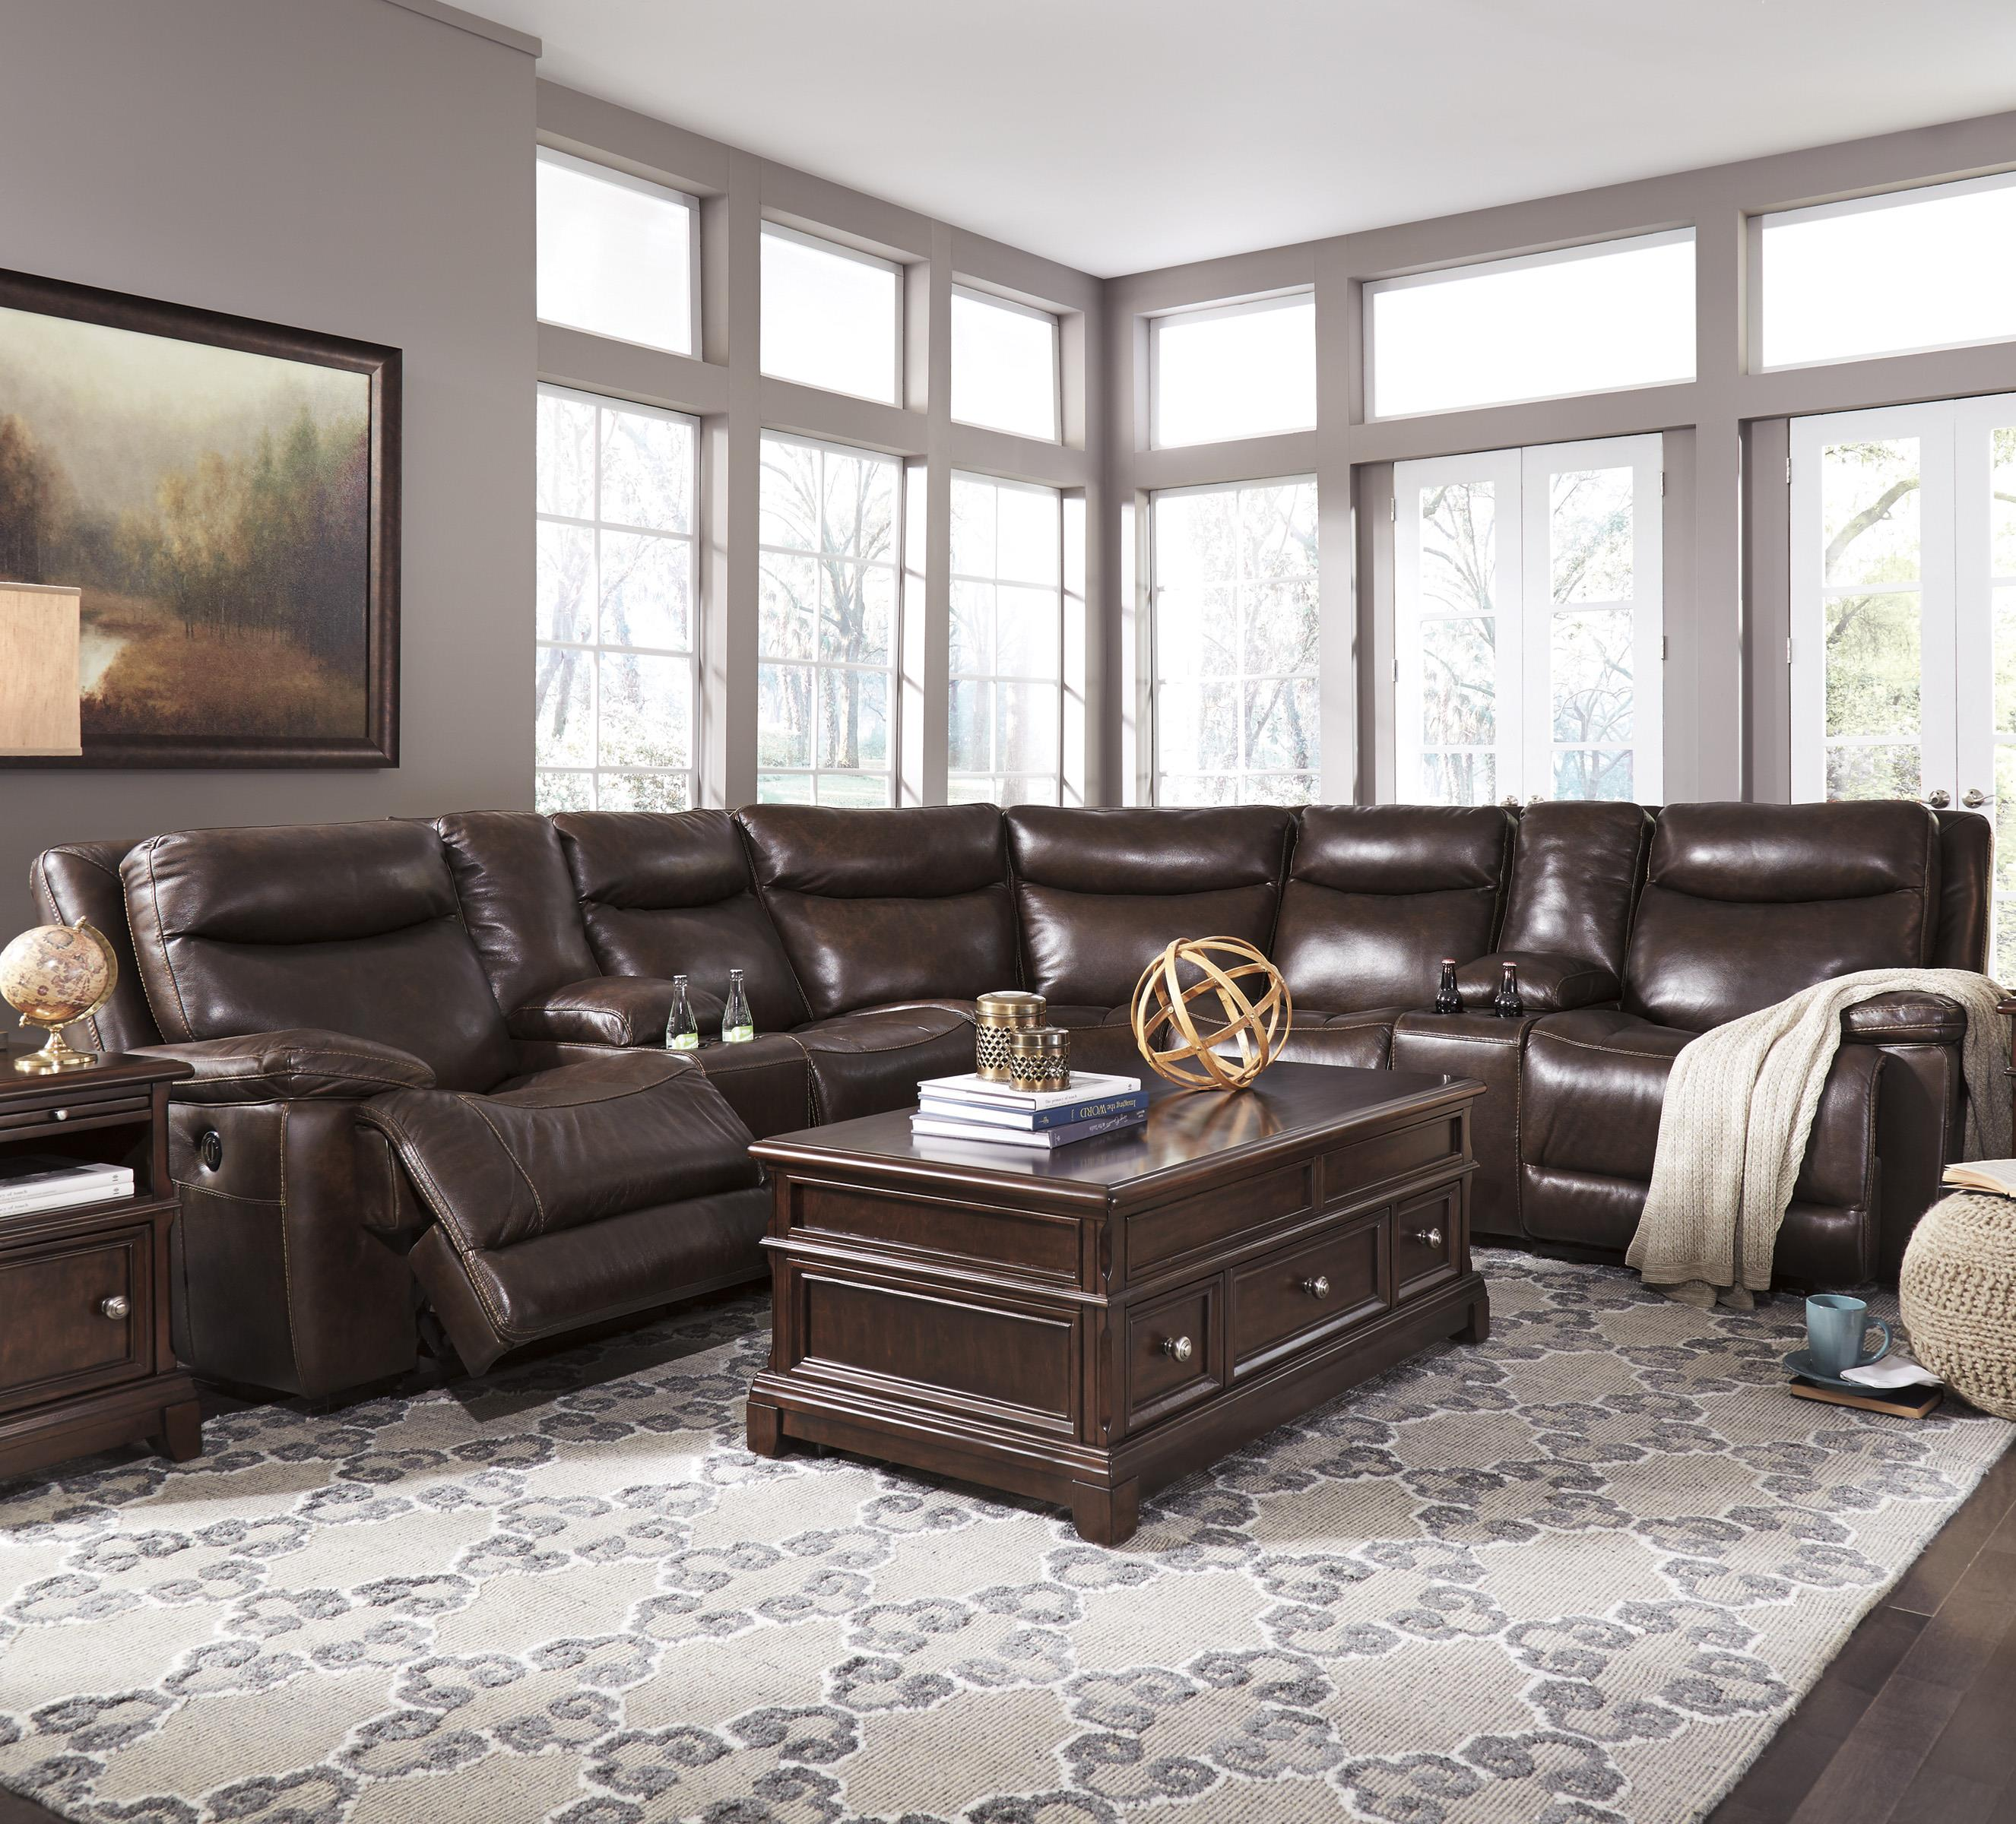 Signature Design by Ashley Zaiden Power Reclining Sectional with 2 Consoles - Item Number: U7500158+2x57+2x19+77+62